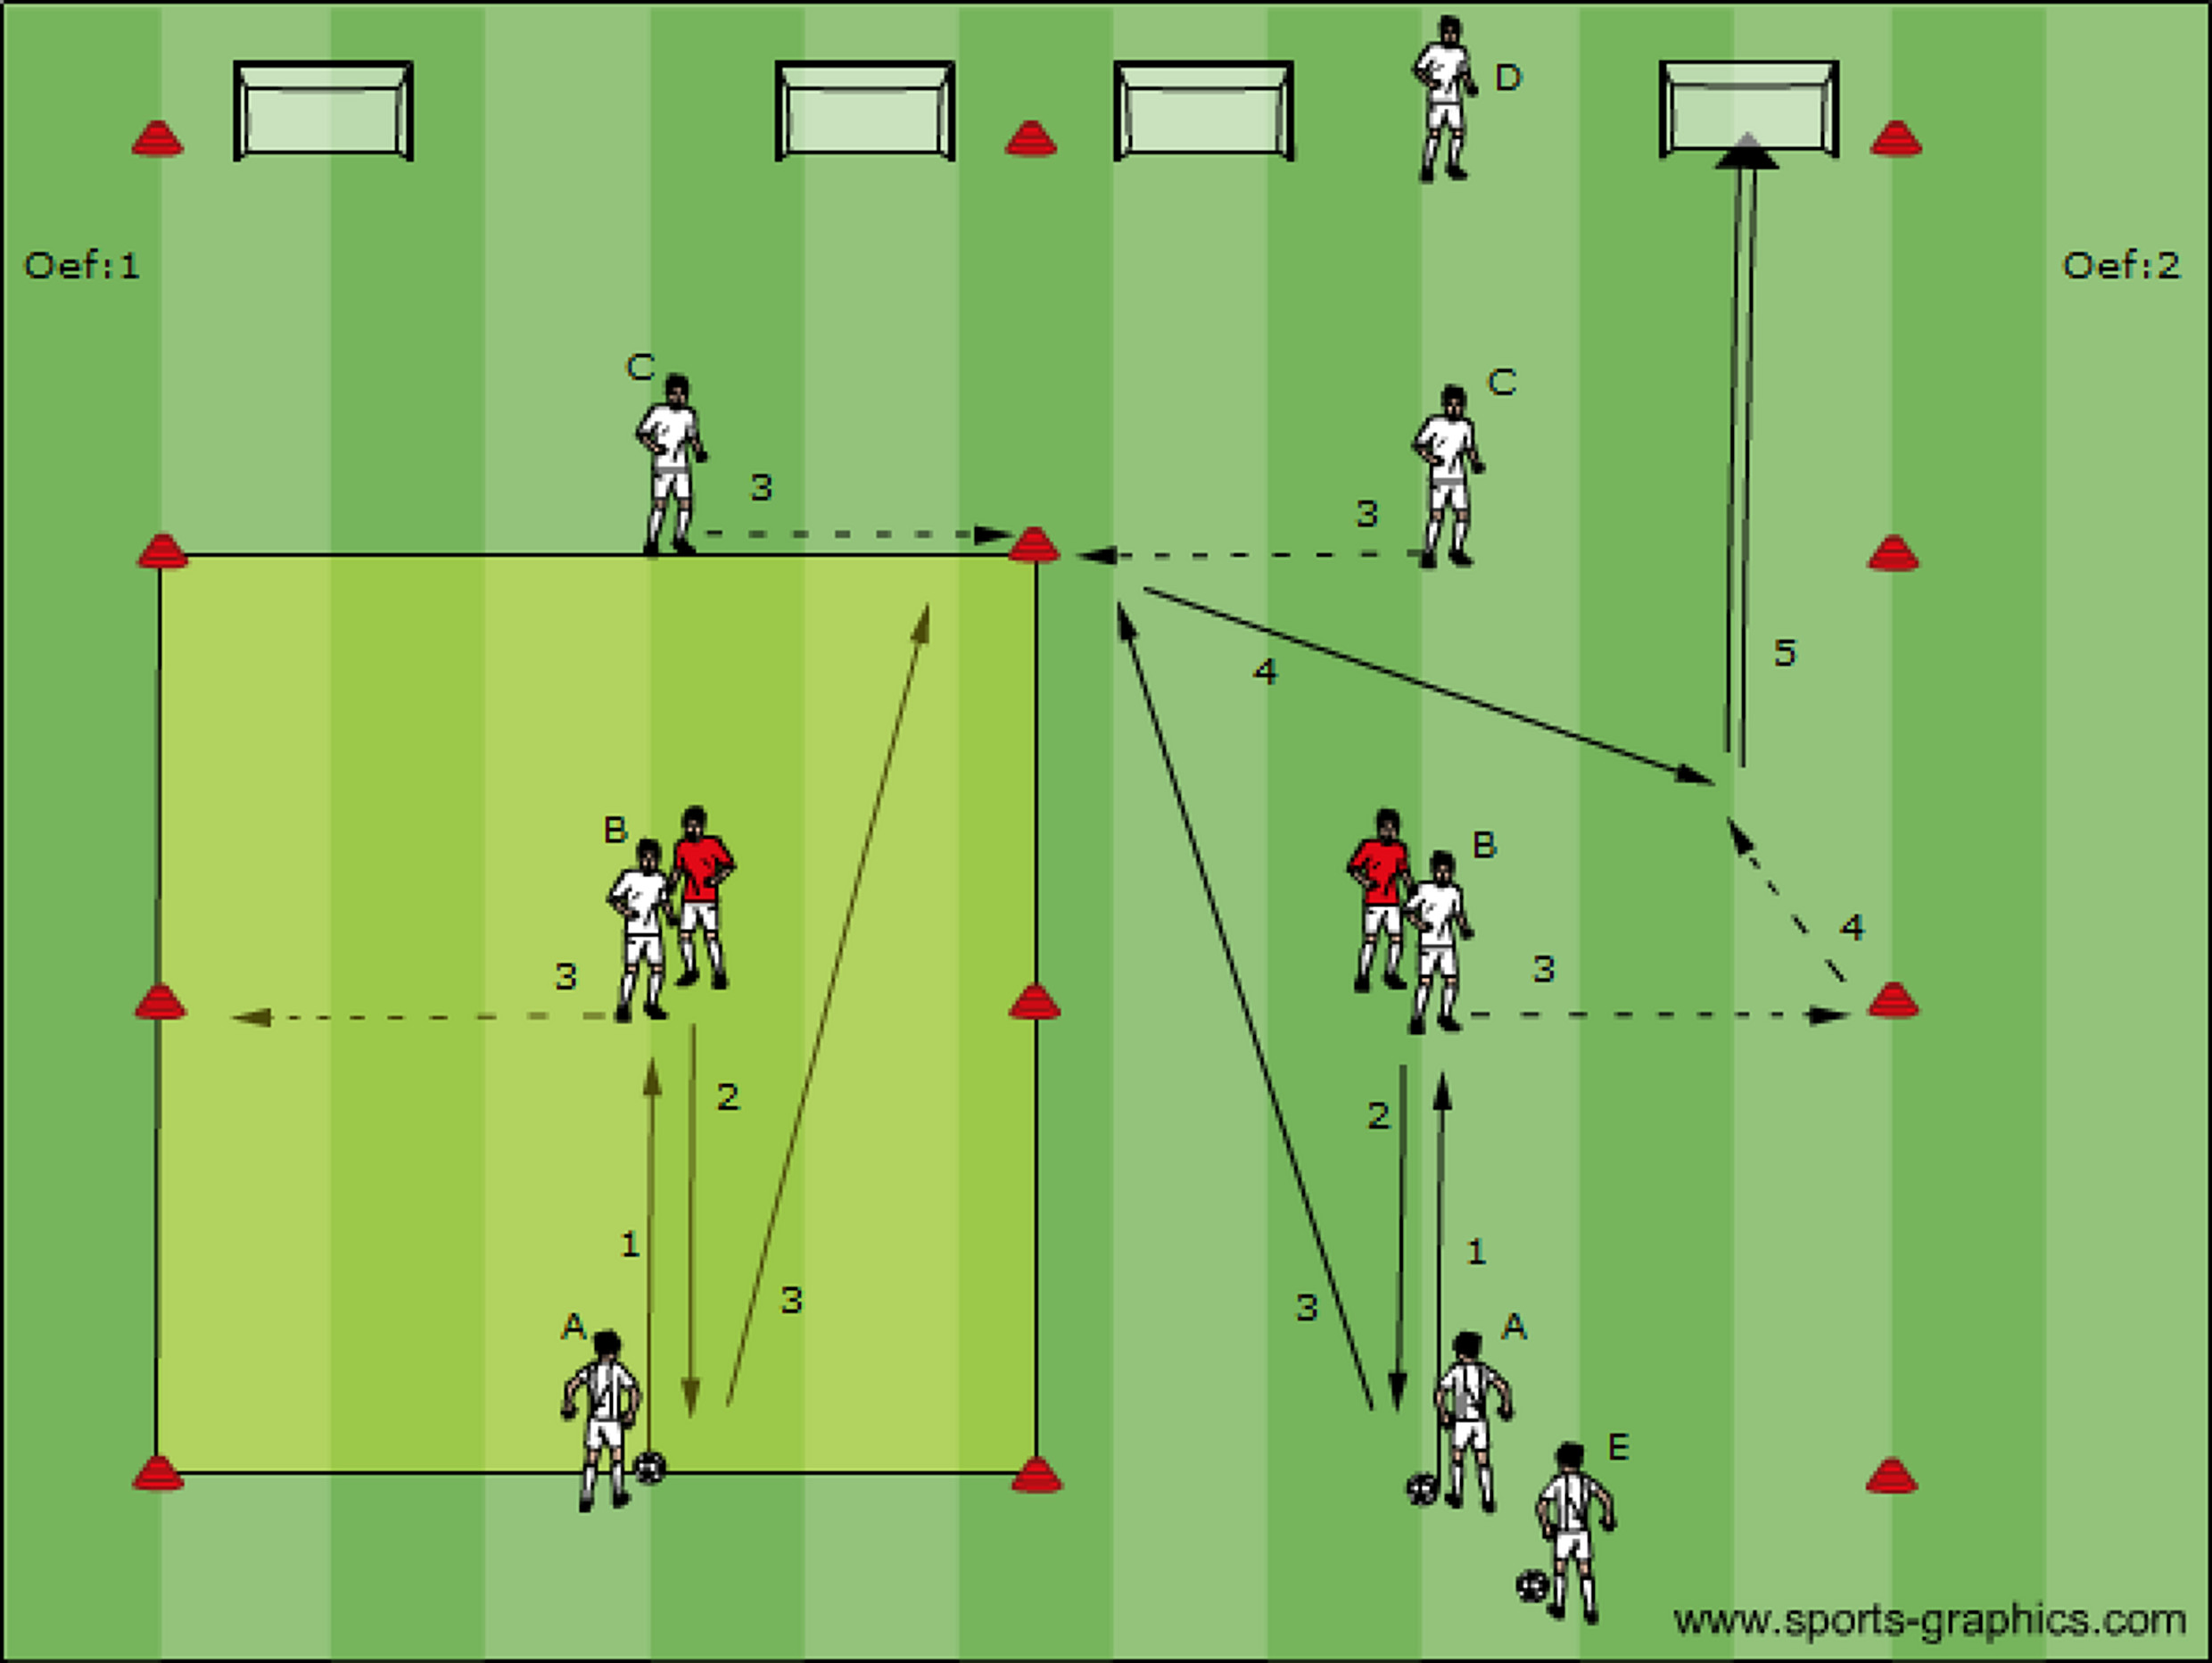 One touch passing